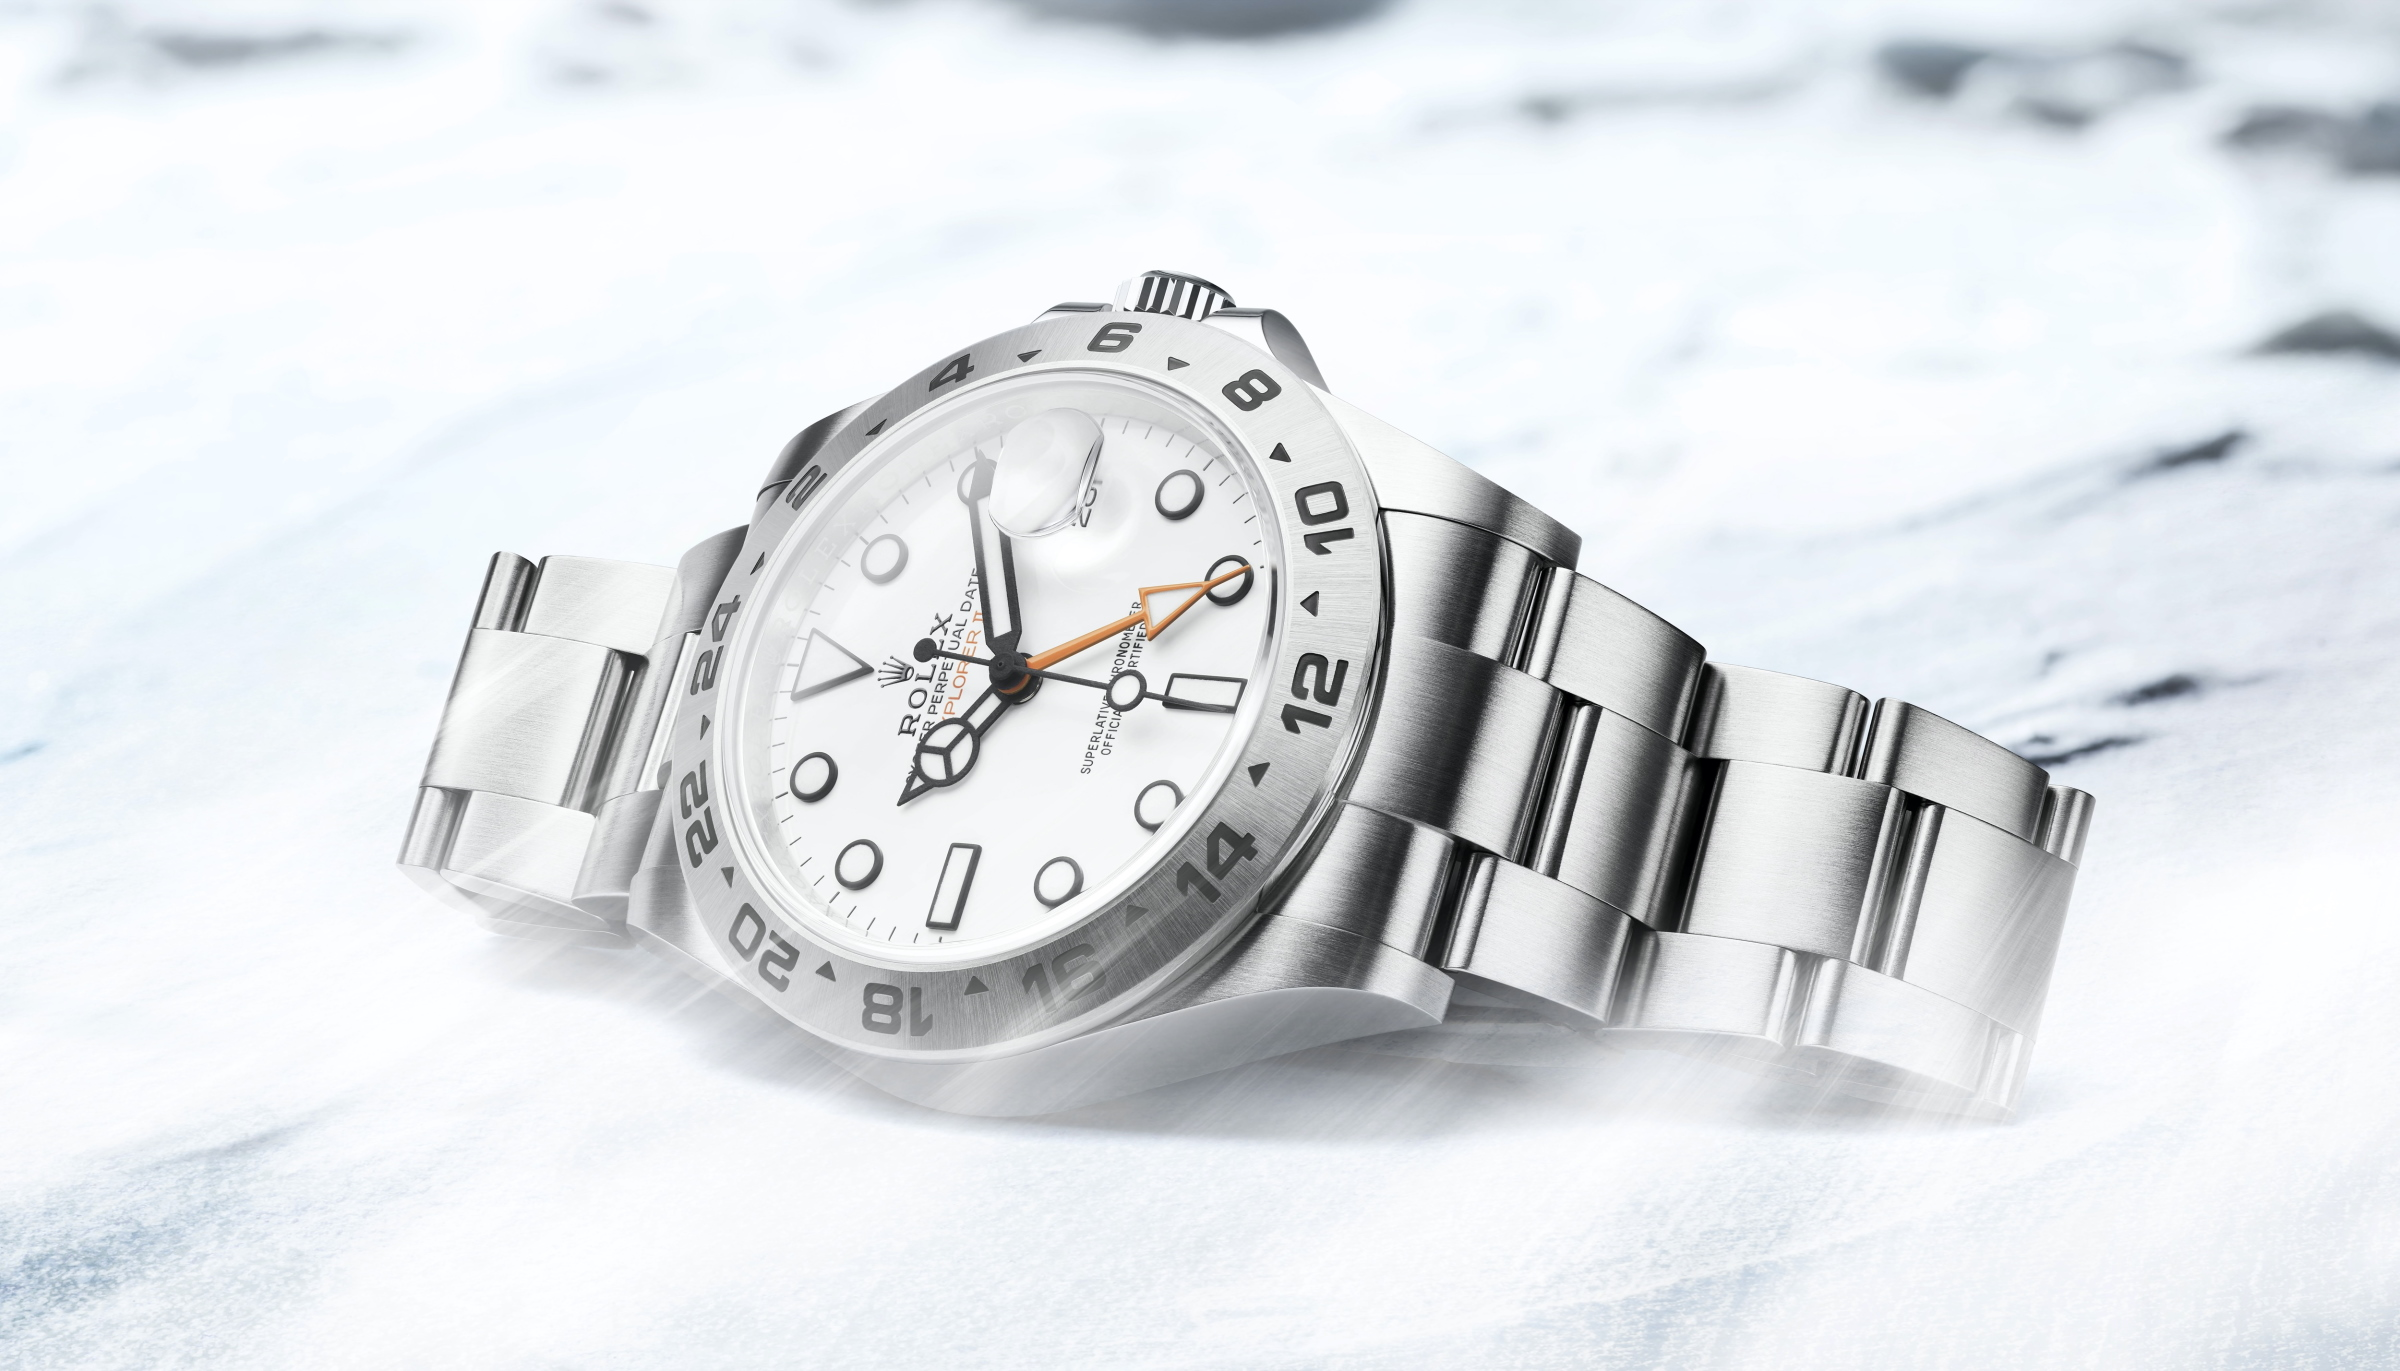 The Rolex Oyster Perpetual Explorer And Oyster Perpetual Explorer II Chart A Brave New World For Luxurious Multi-Functional Timepieces